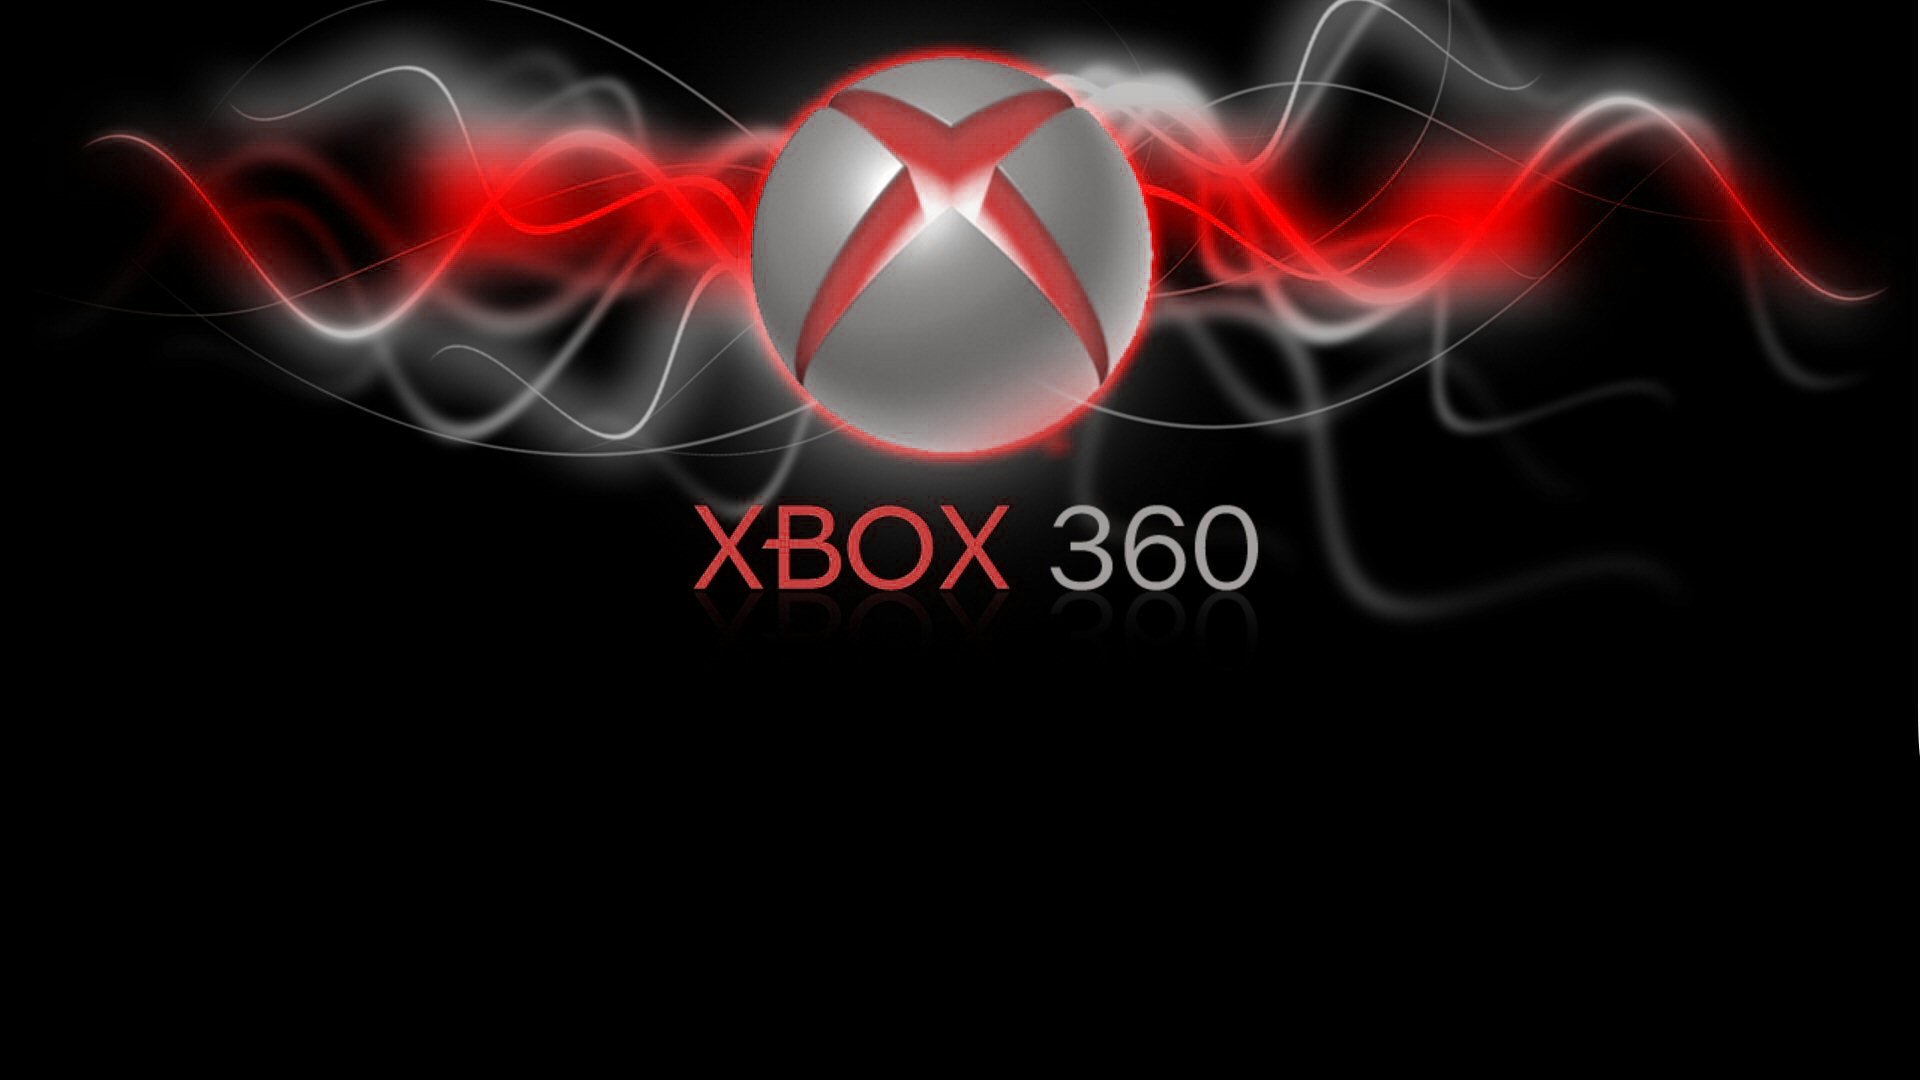 Cool xbox backgrounds wallpapersafari - Xbox one wallpaper 1920x1080 ...